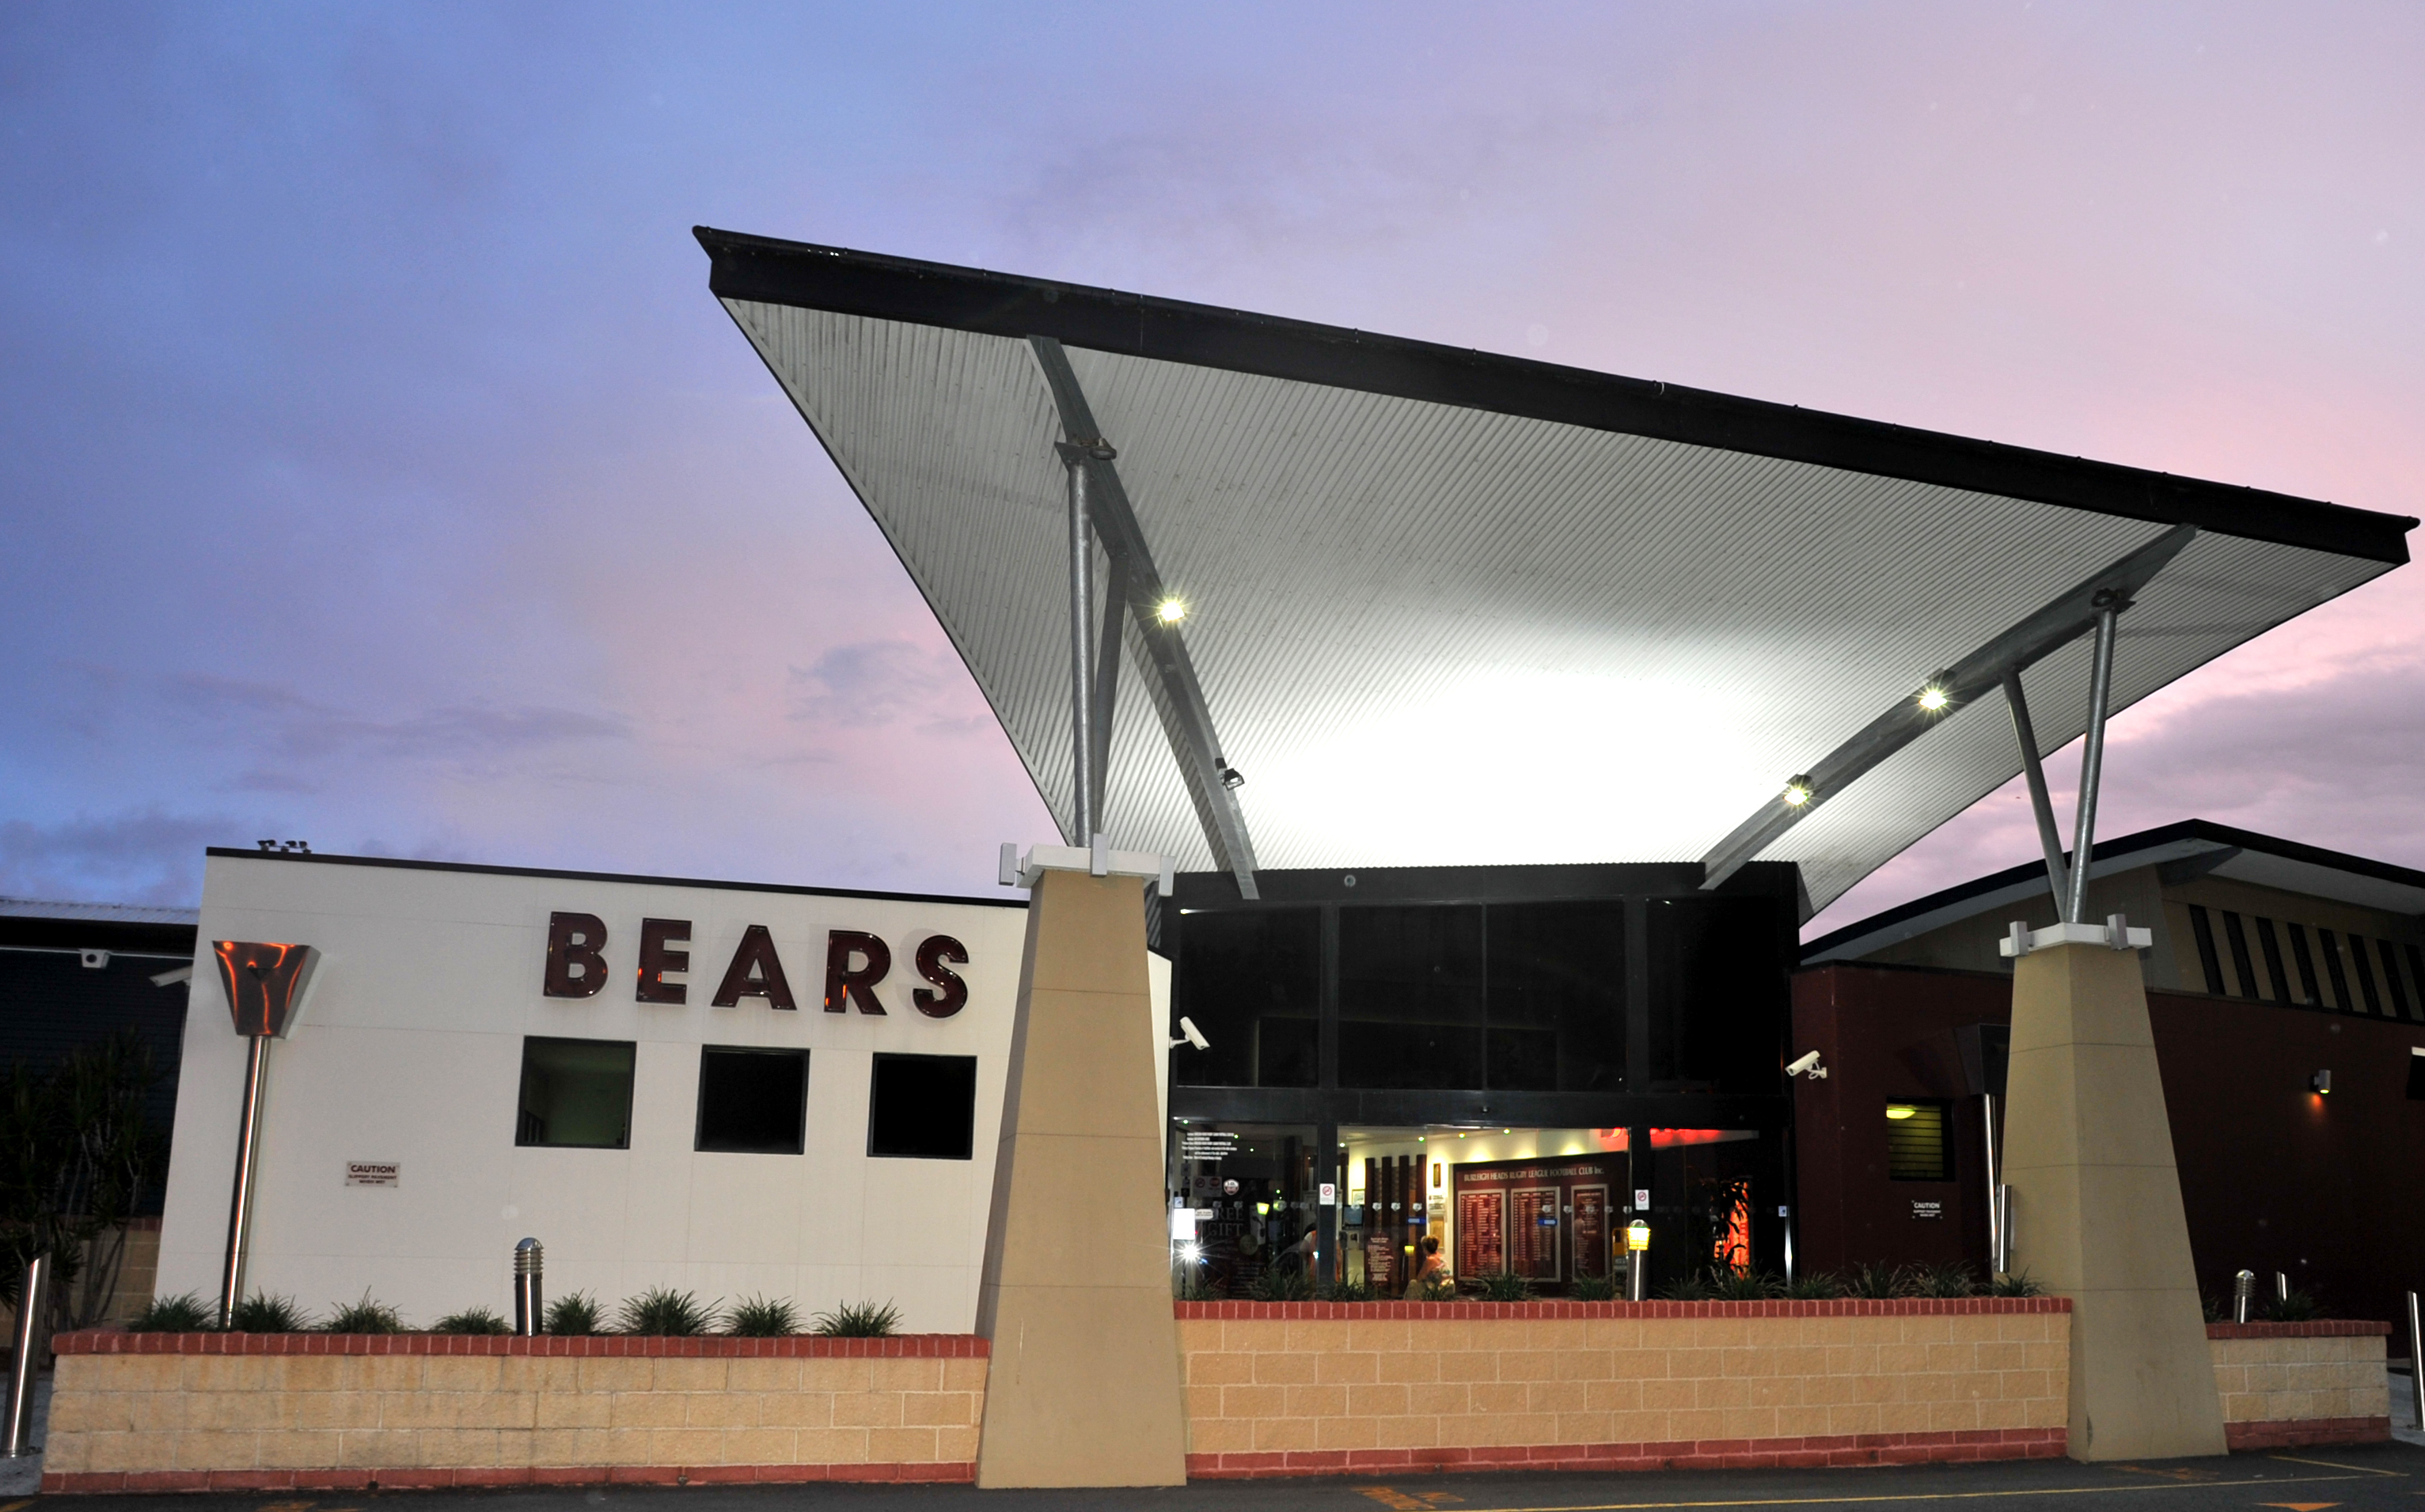 Burleigh Bears Logo and Images